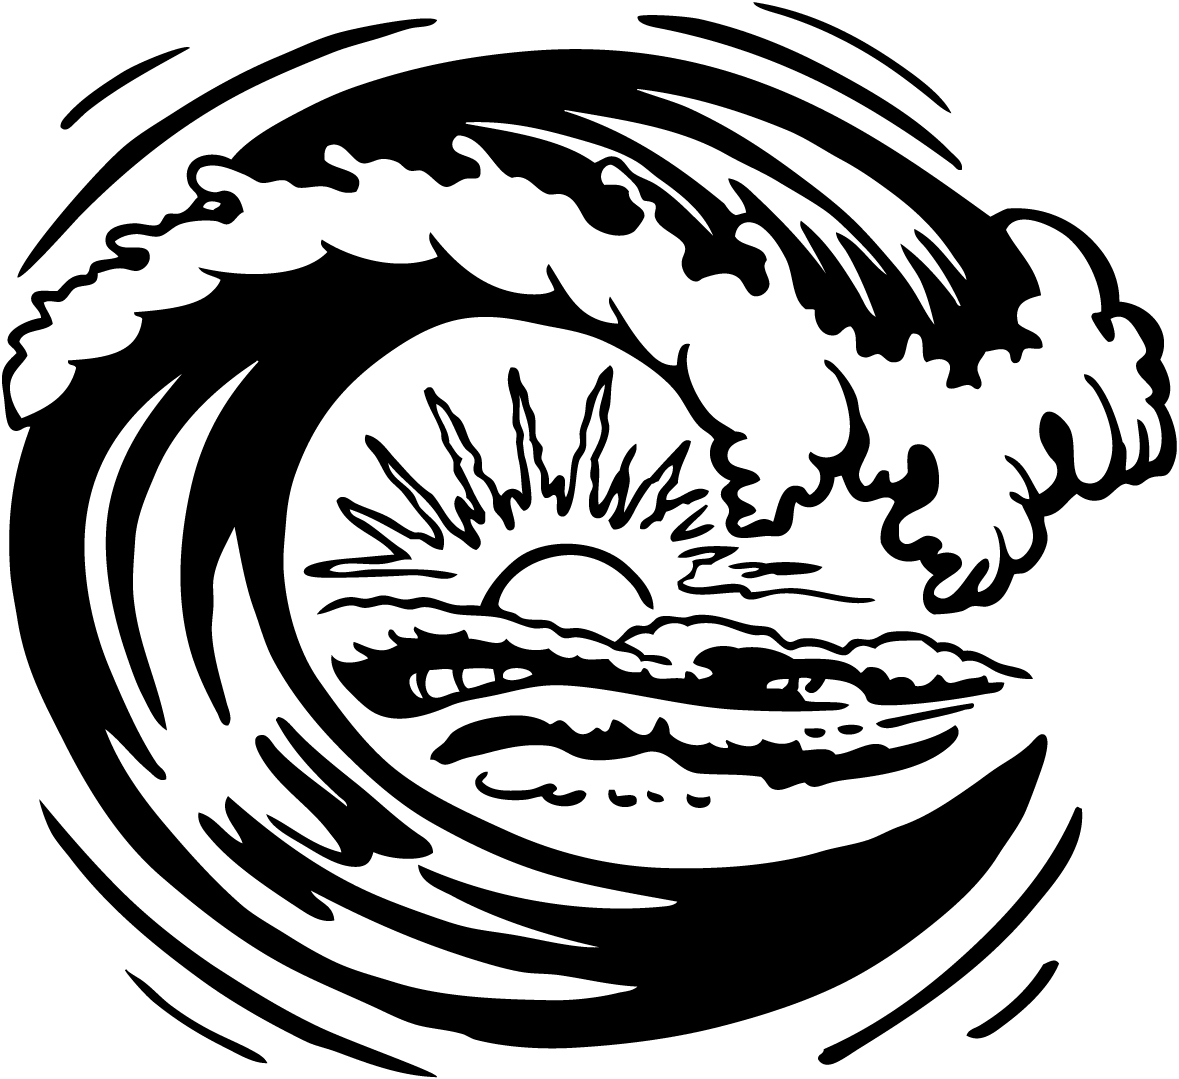 ocean waves coloring pages - Ideal.vistalist.co